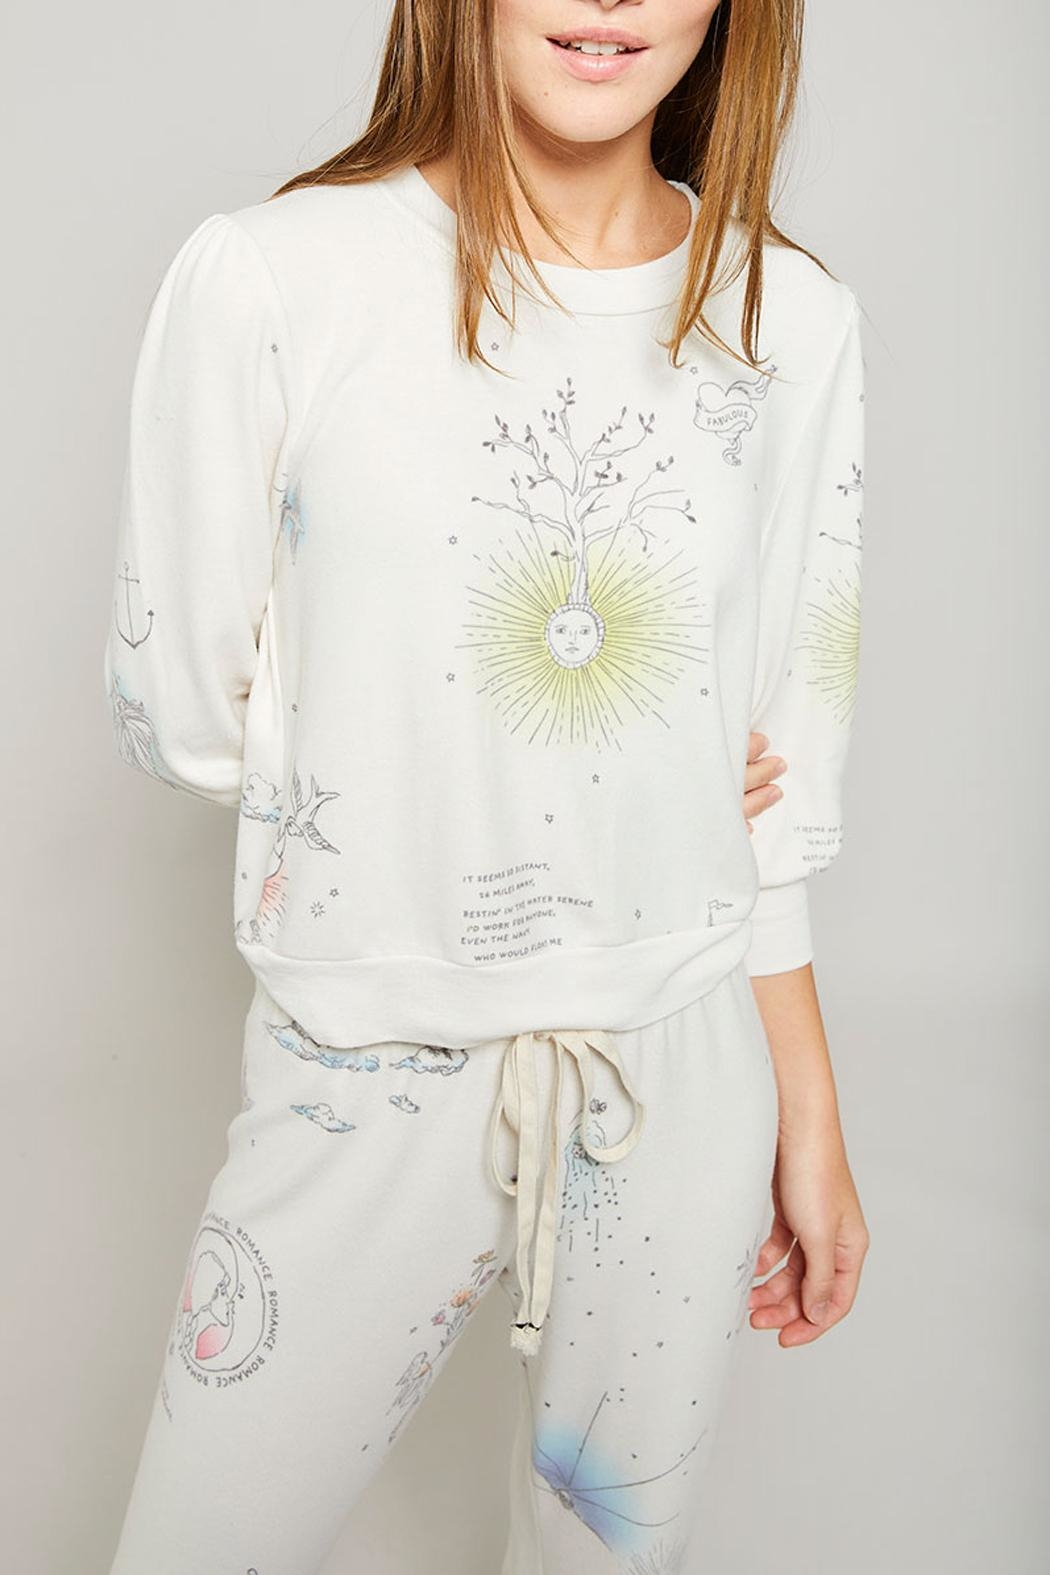 All Things Fabulous Catalina Spring Top - Main Image